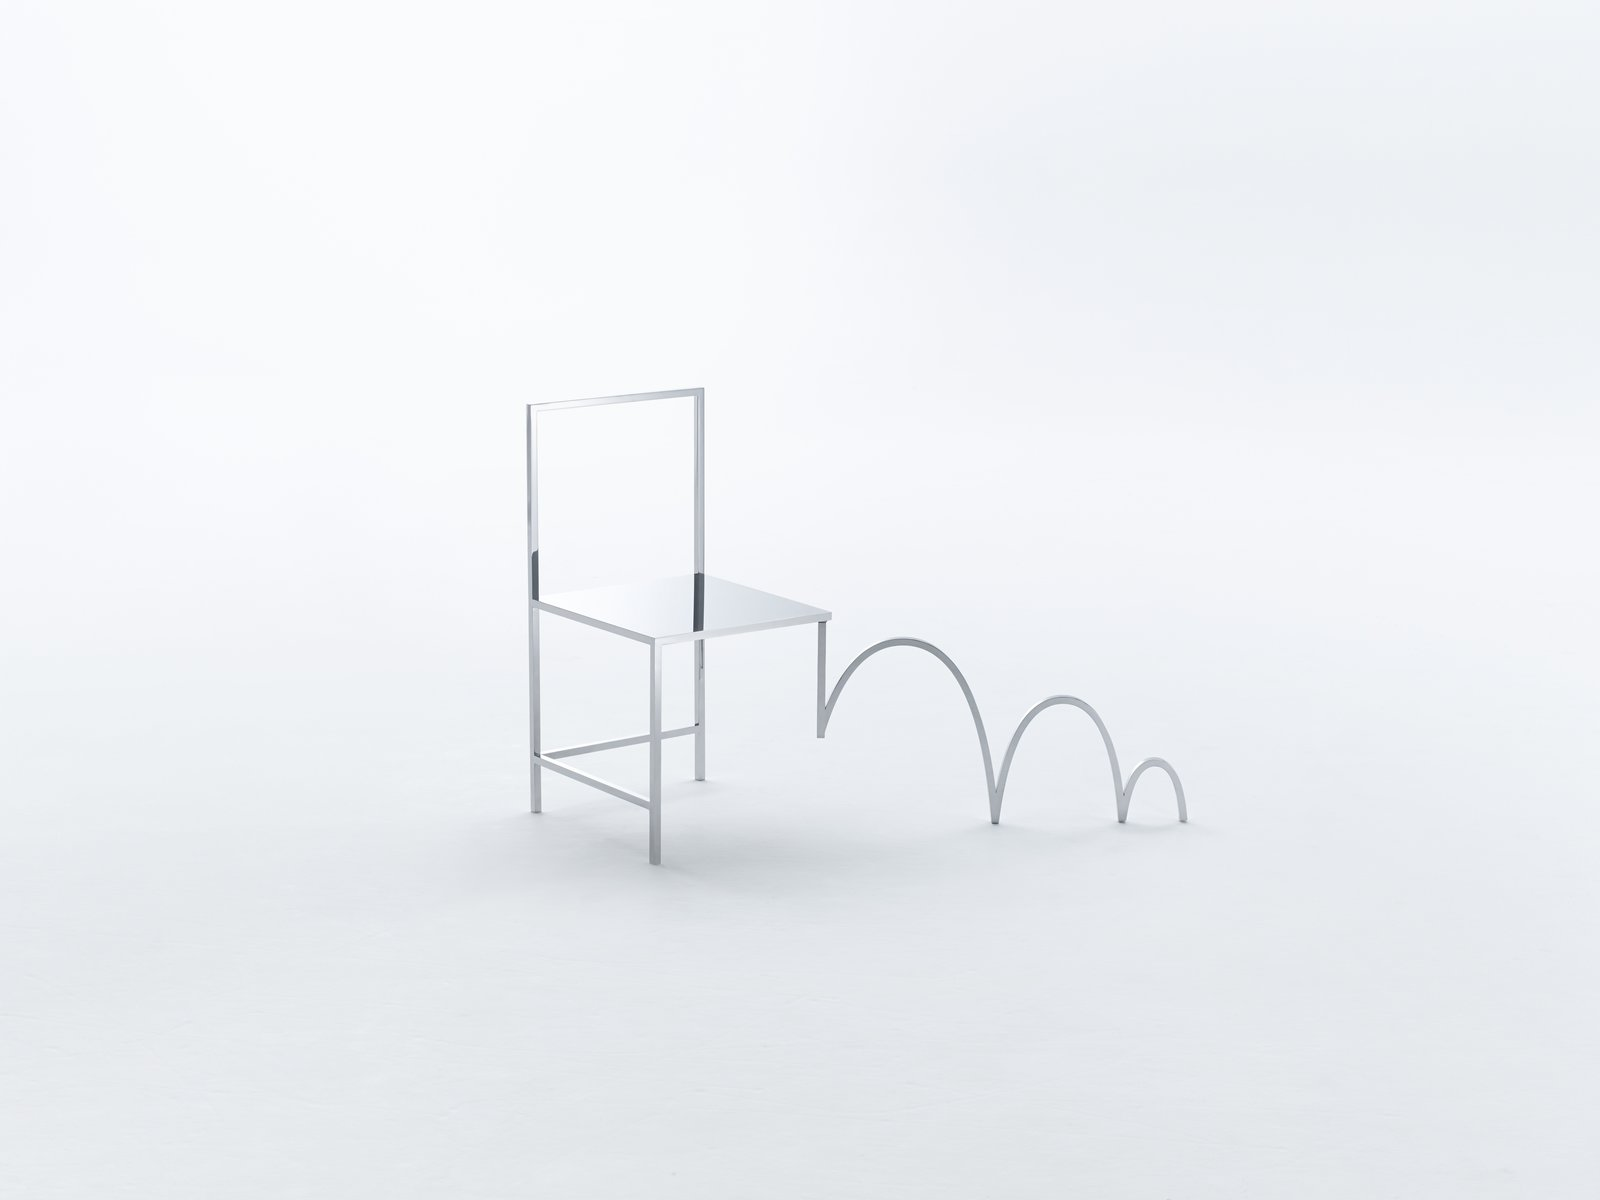 Each chair has a distinct personality. Inspired by the visual devices typically used in Manga, no two chairs are alike.